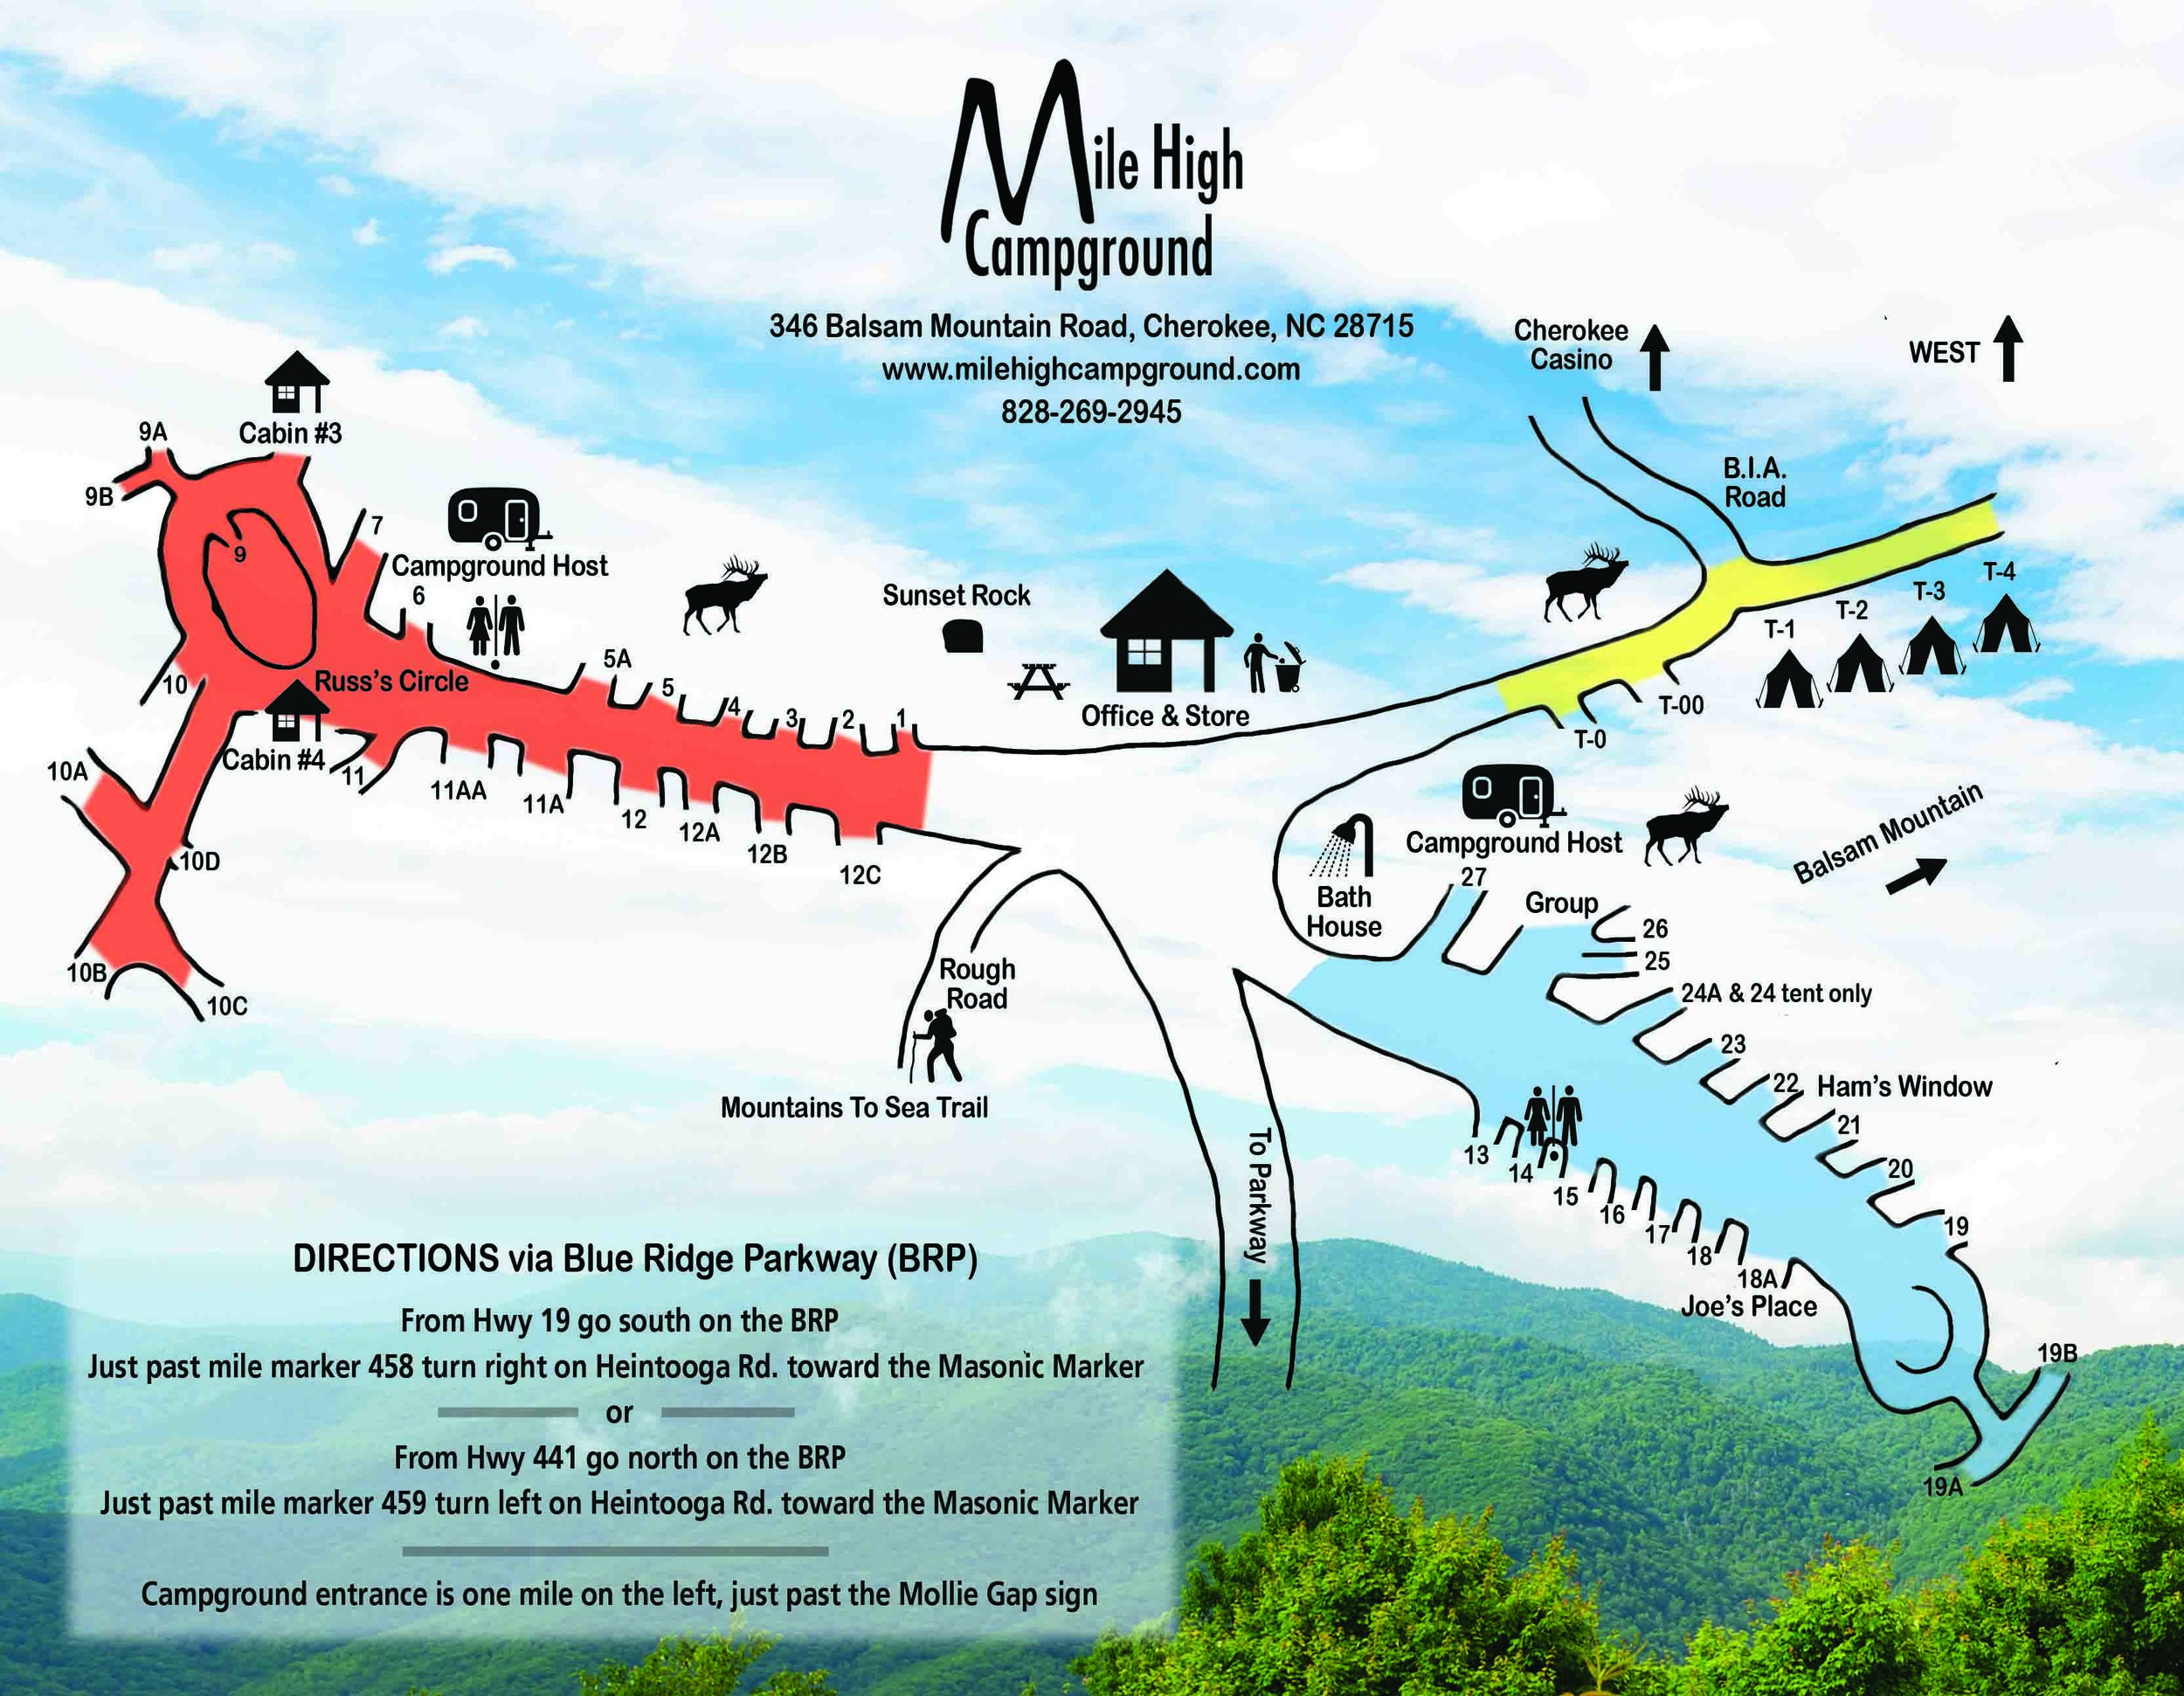 Mile High Campground Brochure - Click Below to Download our printable brochure.Front of BrochureBack of Brochure (site map)